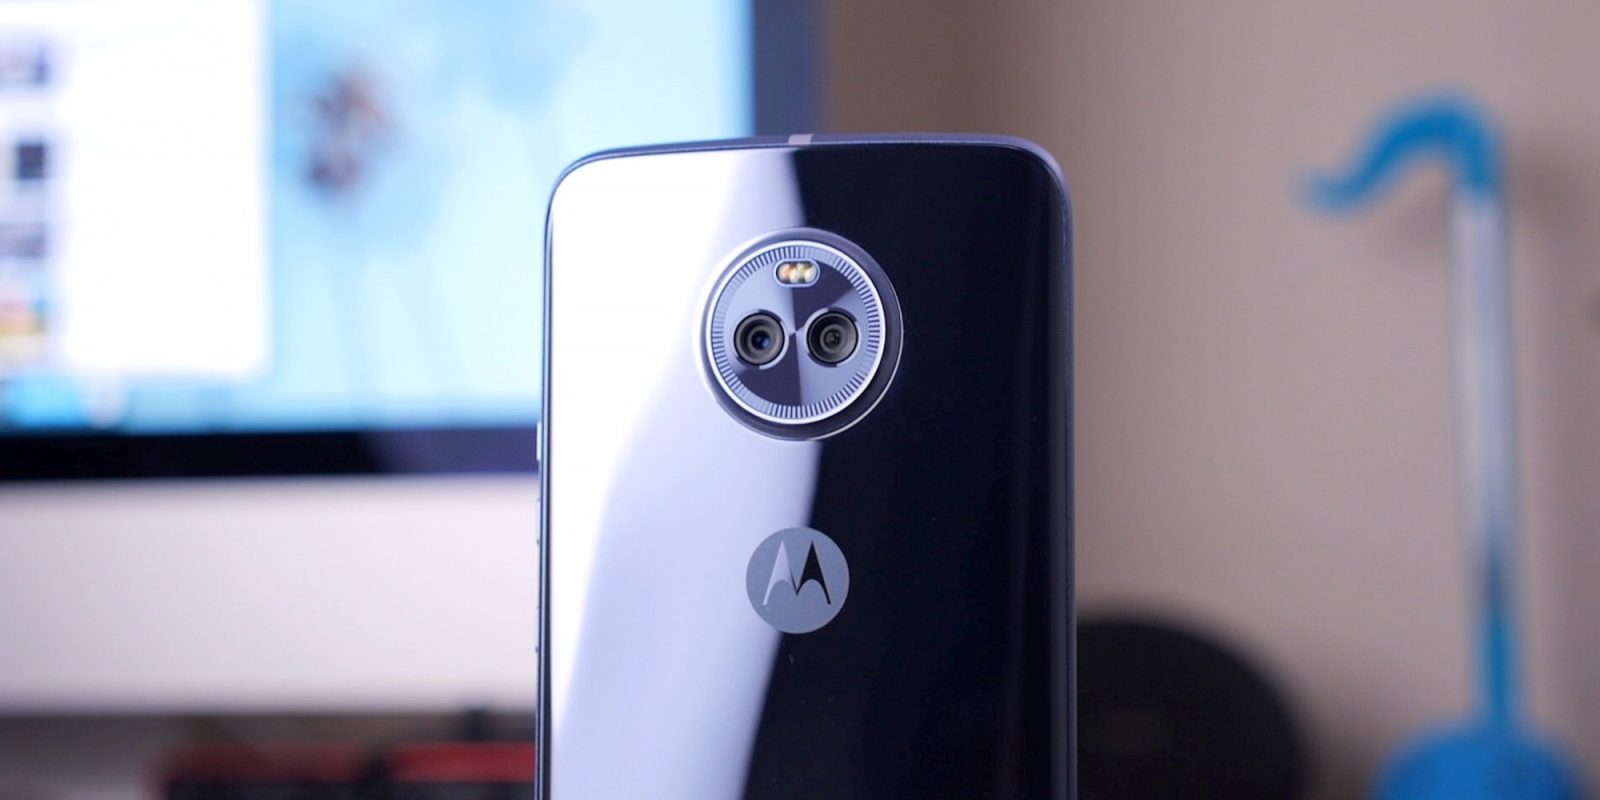 new styles 85777 b6595 Review: Moto X4 revives the longstanding brand with less options and ...